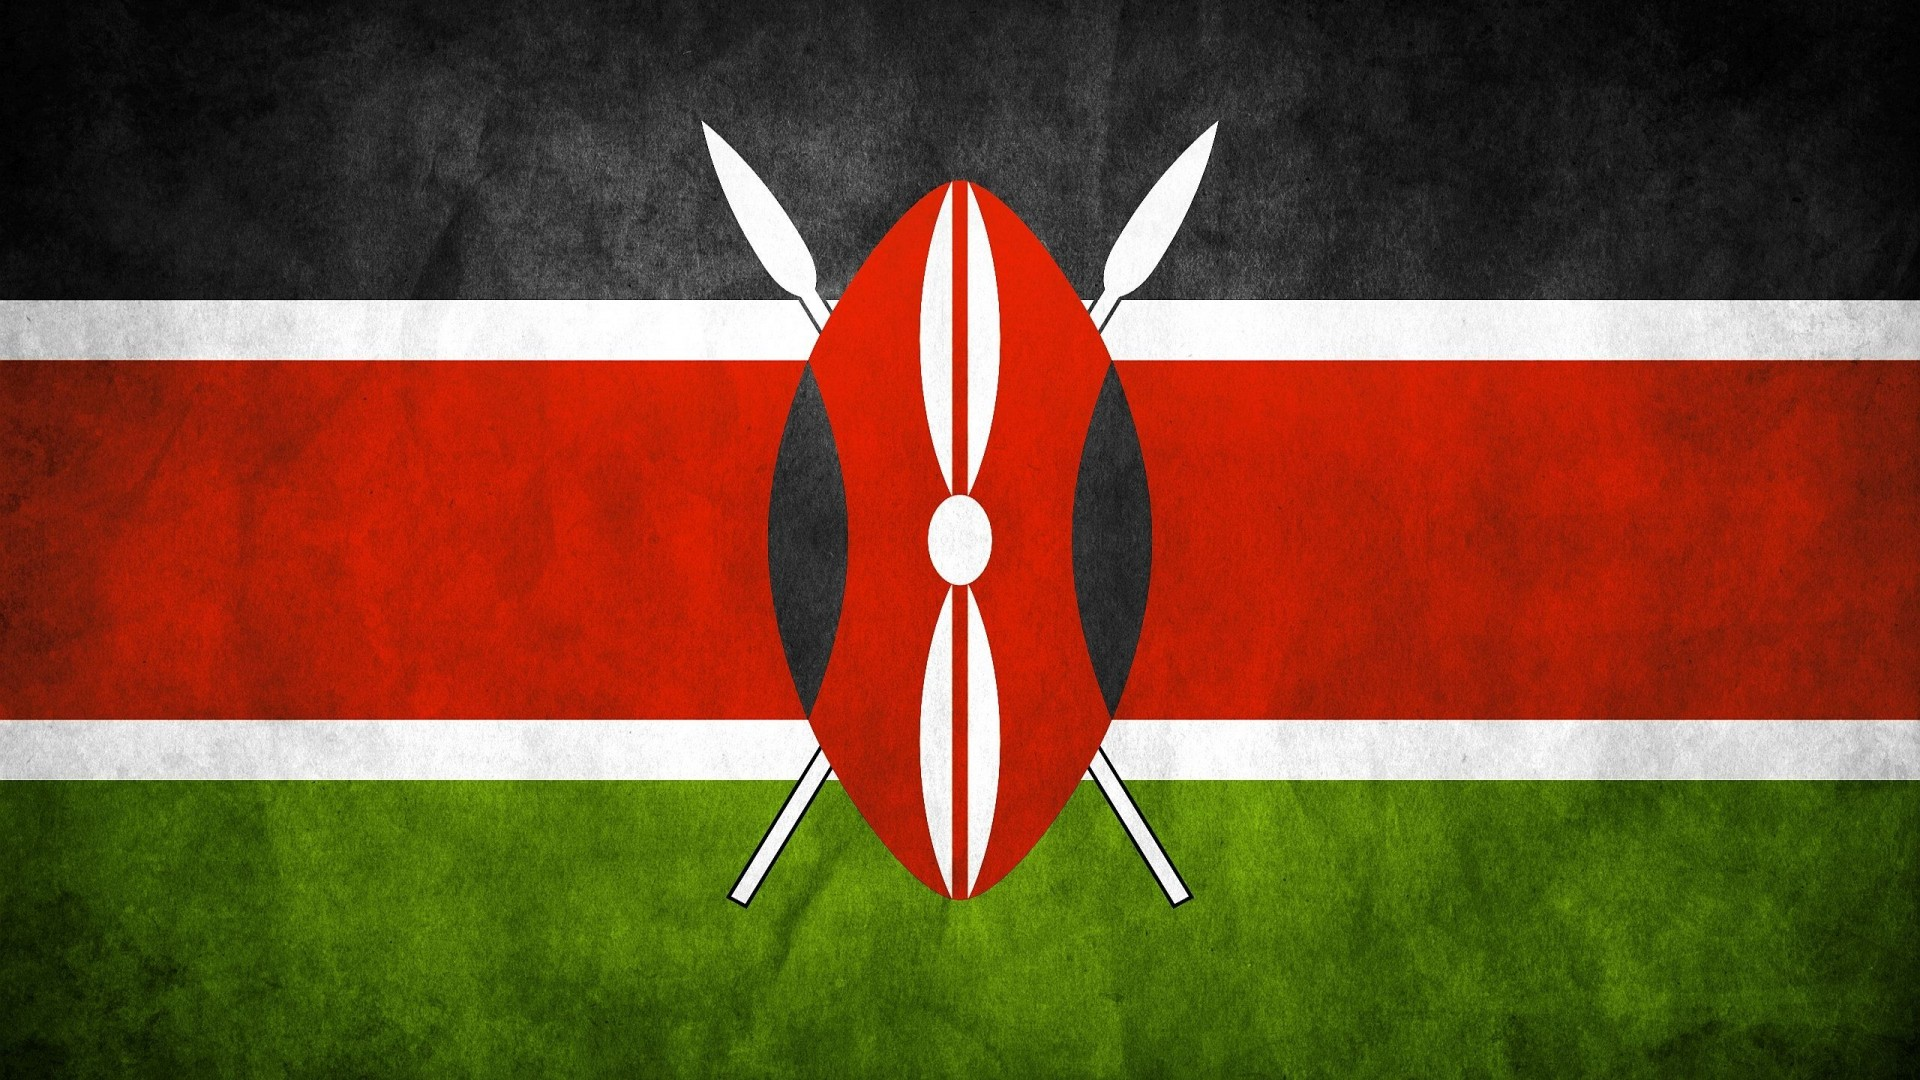 Cute Wallpapers Of Hello Kitty Kenya Flag Wallpaper High Definition High Quality